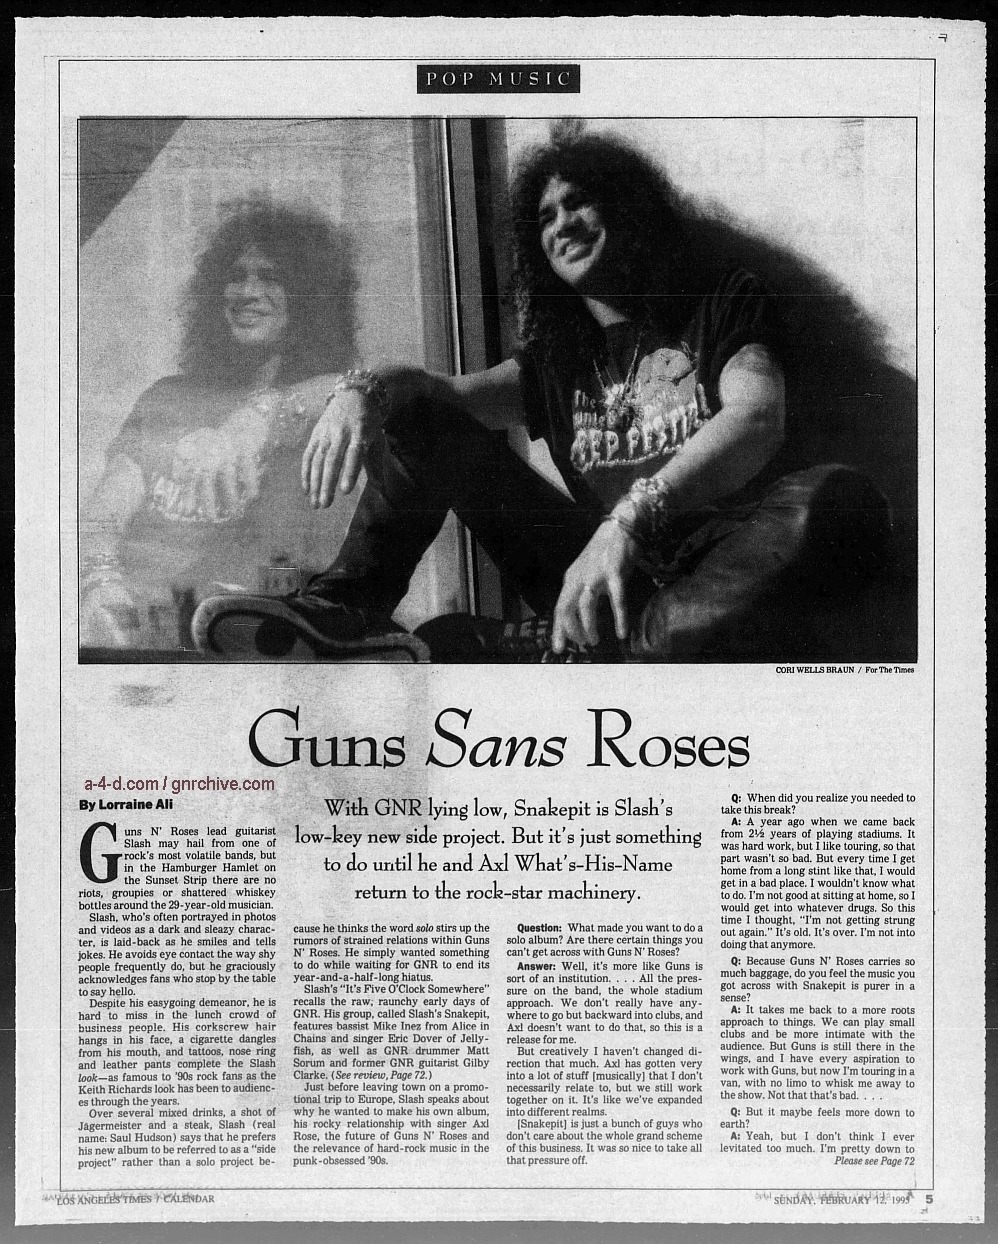 1995.02.12 - Los Angeles Times - Guns Sans Roses (Slash) 1995_021